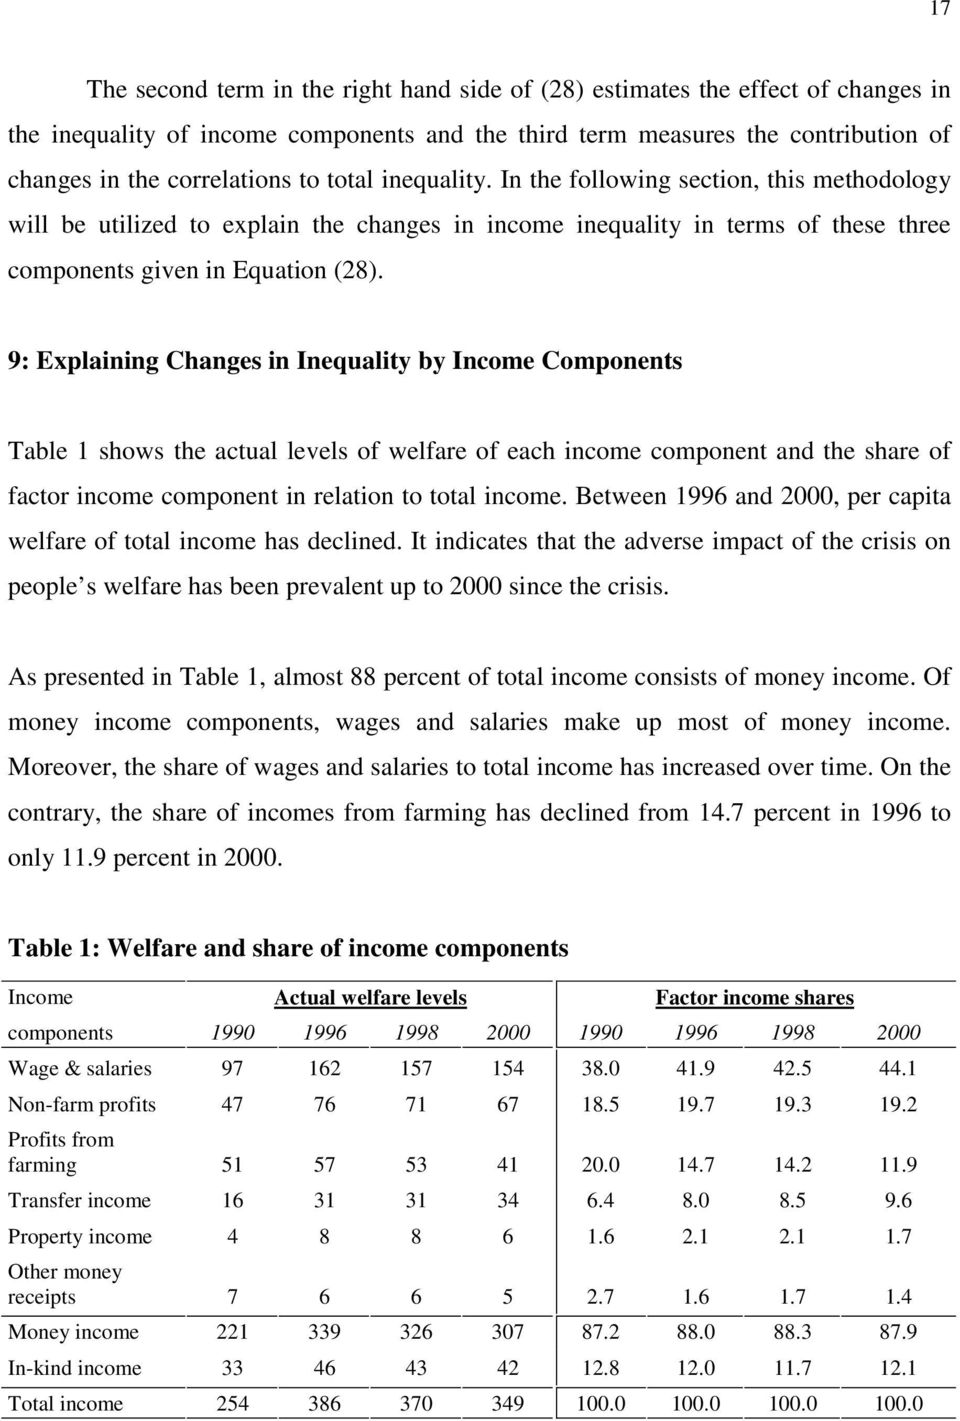 9: Explanng Changes n Inequalty by Income Components Table shows the actual levels of welfare of each ncome component and the share of factor ncome component n relaton to total ncome.